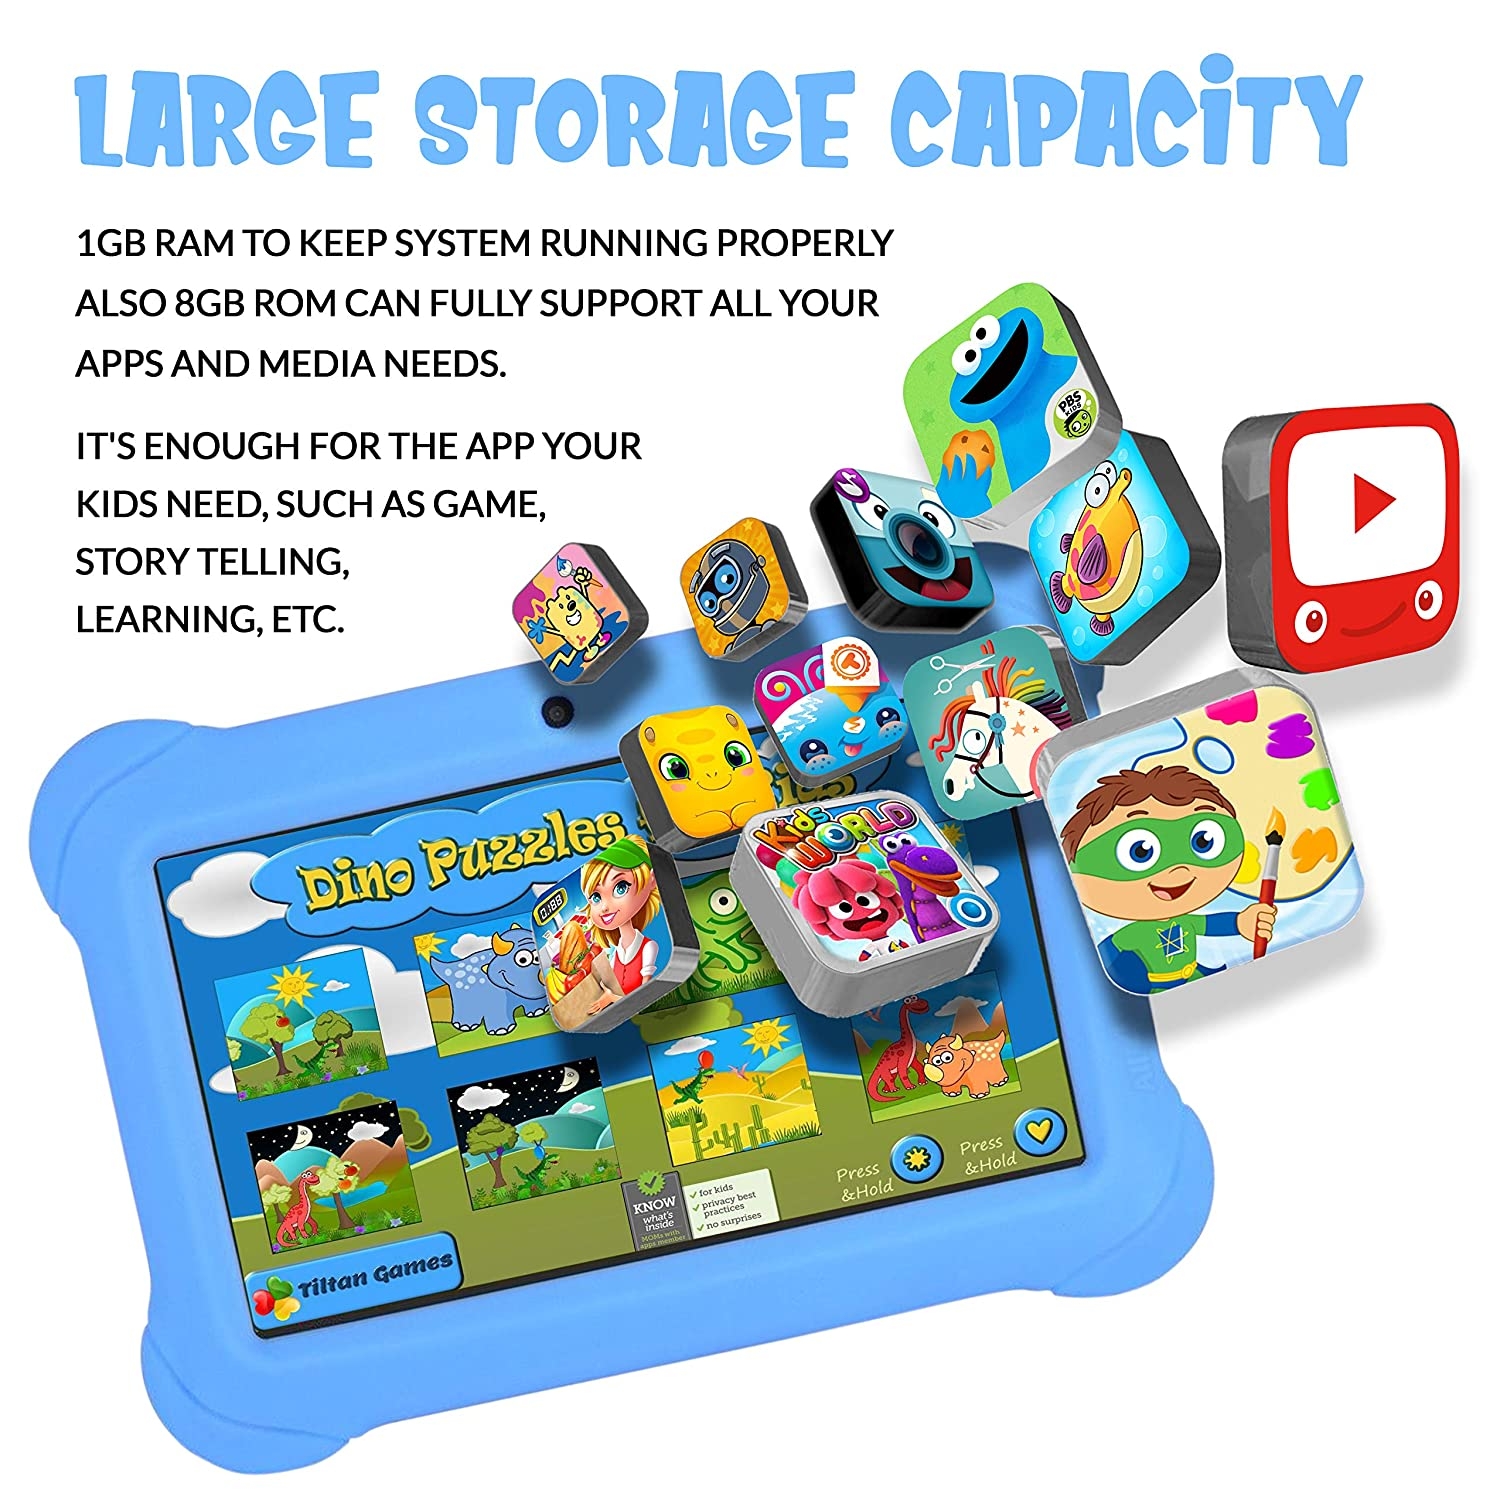 ANOC 7-inch Android Kids Tablet with 1GB RAM/8GB storage (expandable up to  32GB), Dual Camera, Quad Core Processor, Google Play, Full USB, Wi-Fi,